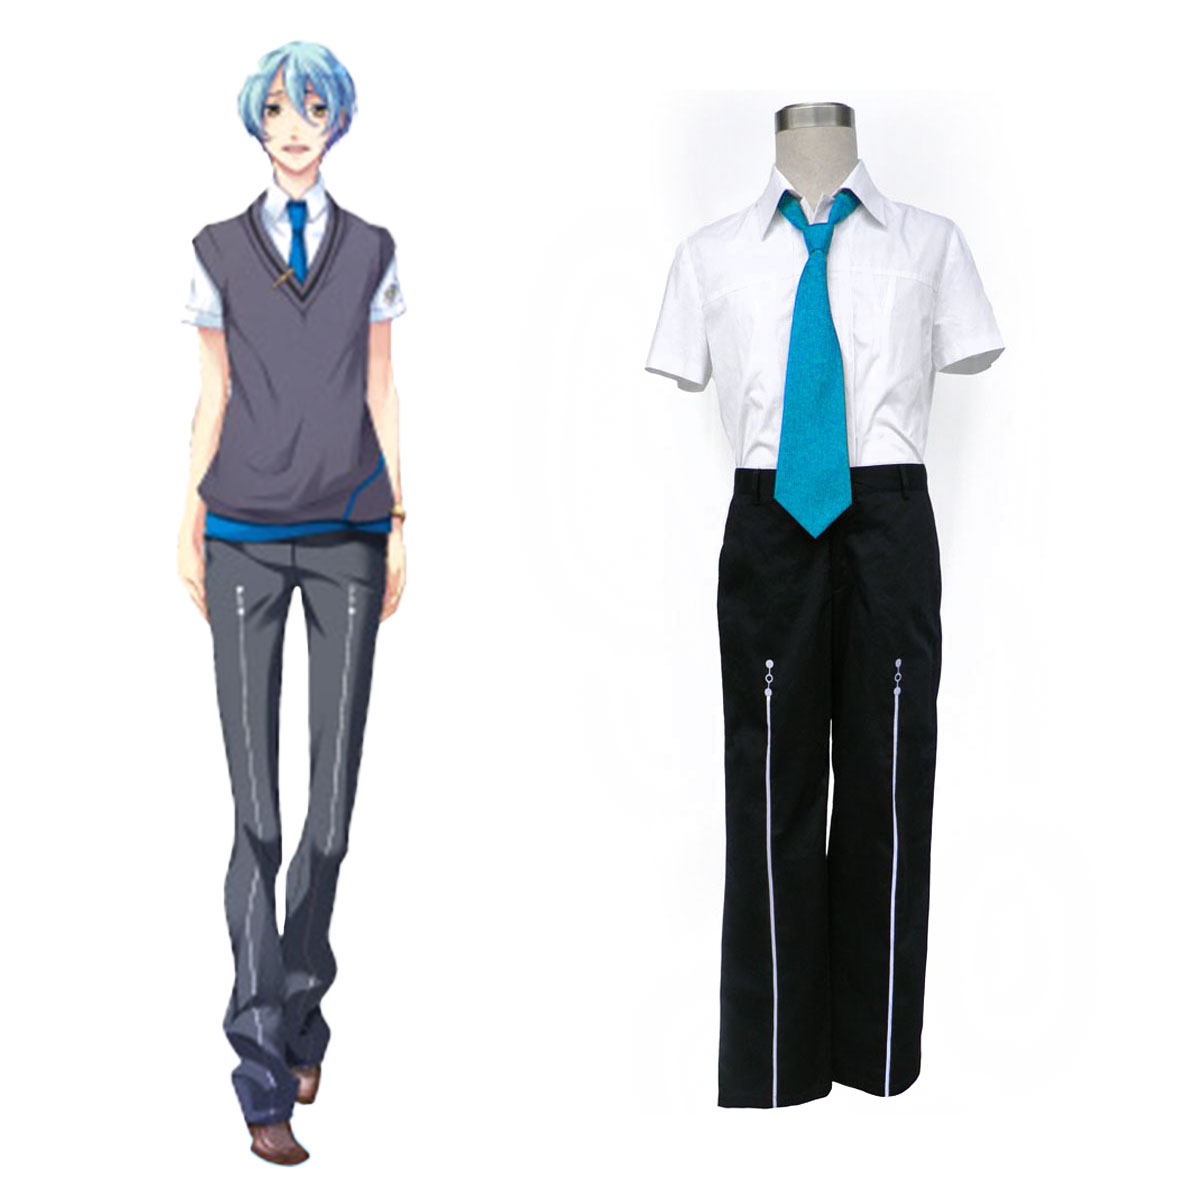 Starry Sky Male Summer School Uniform 3 Cosplay Costumes AU